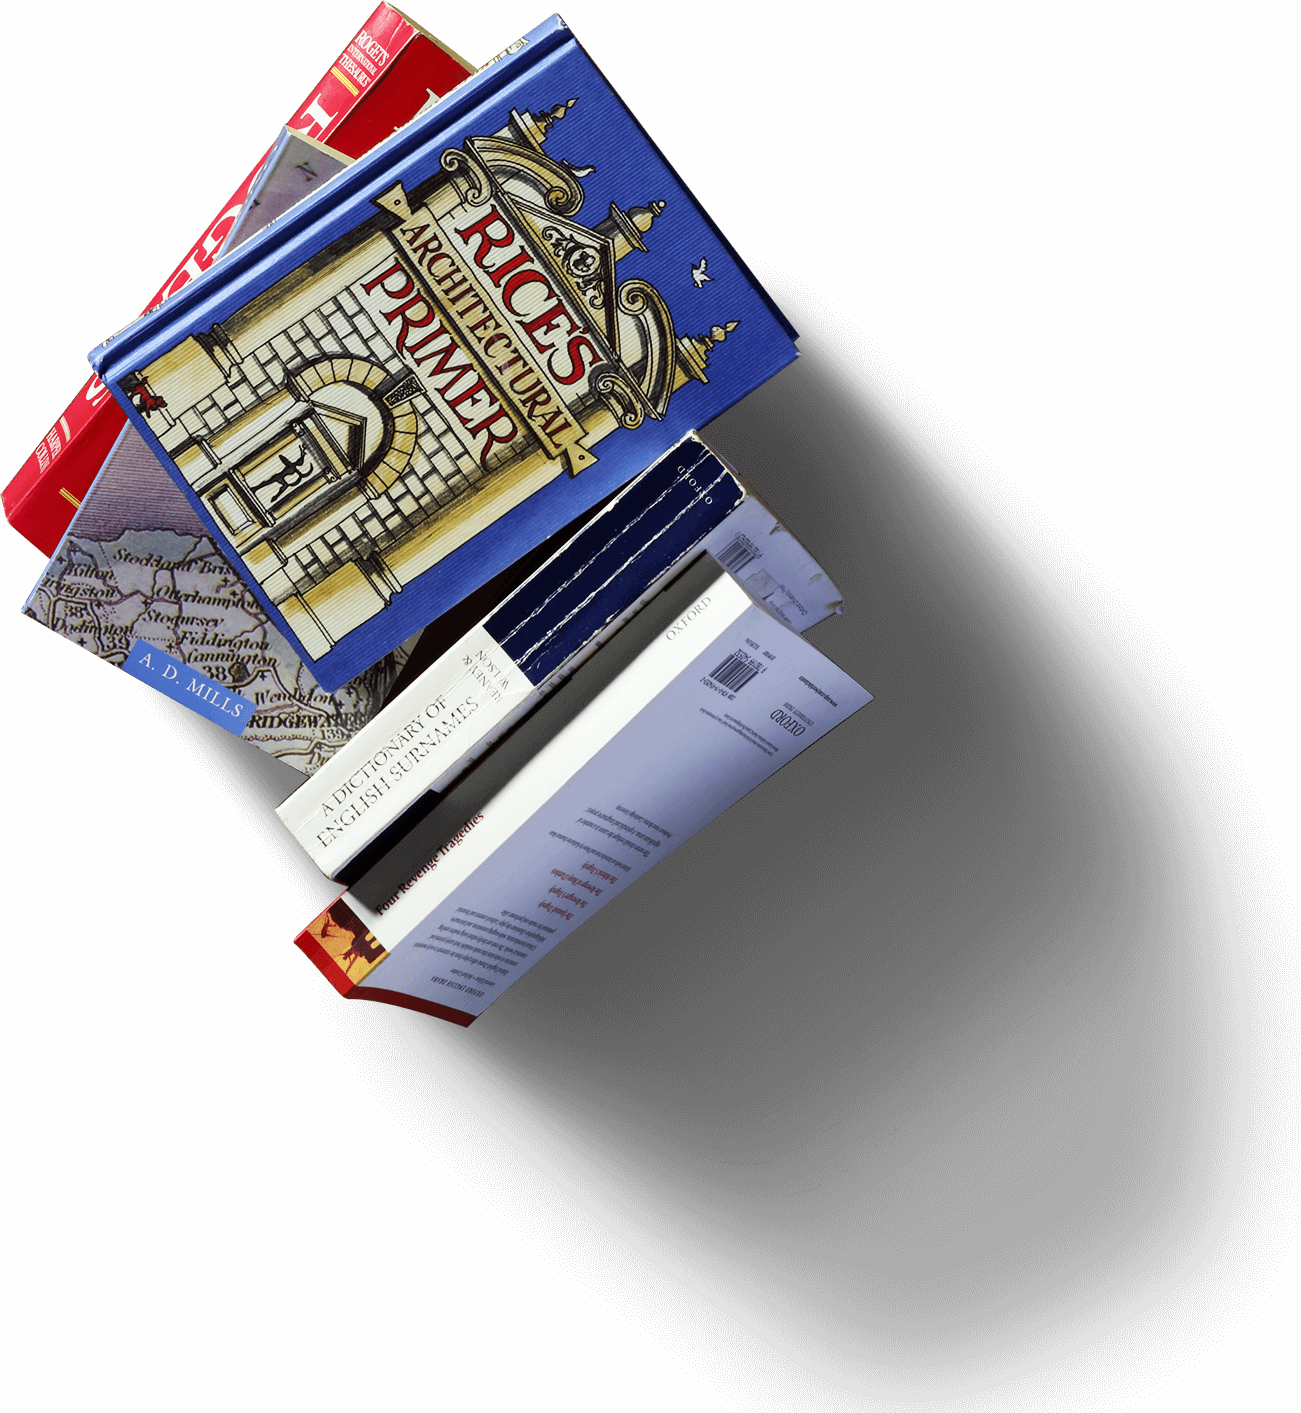 book-stackpn9ac6.png